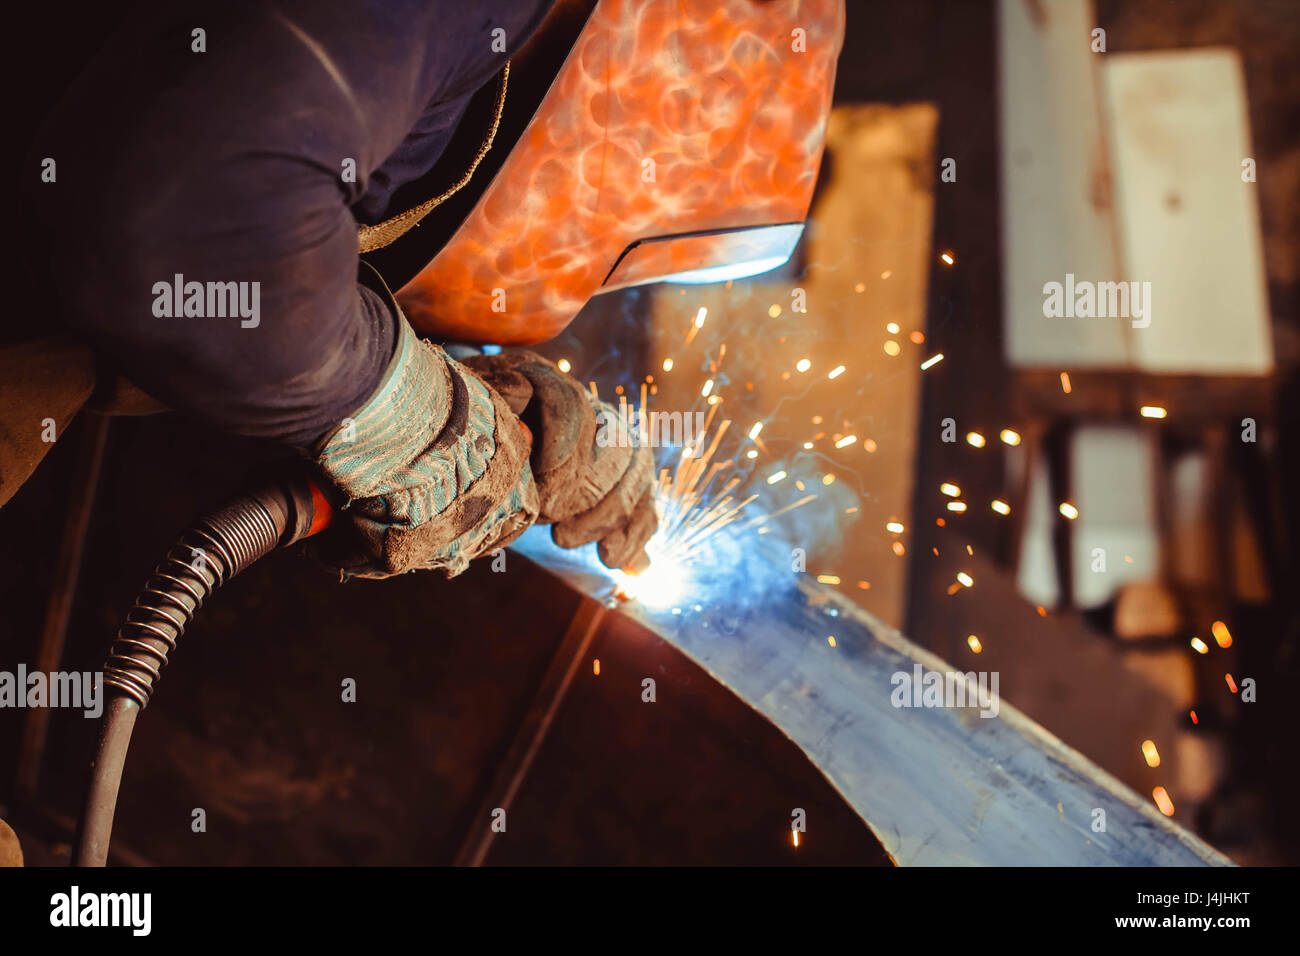 Metal Welding with sparks and smoke - Stock Image